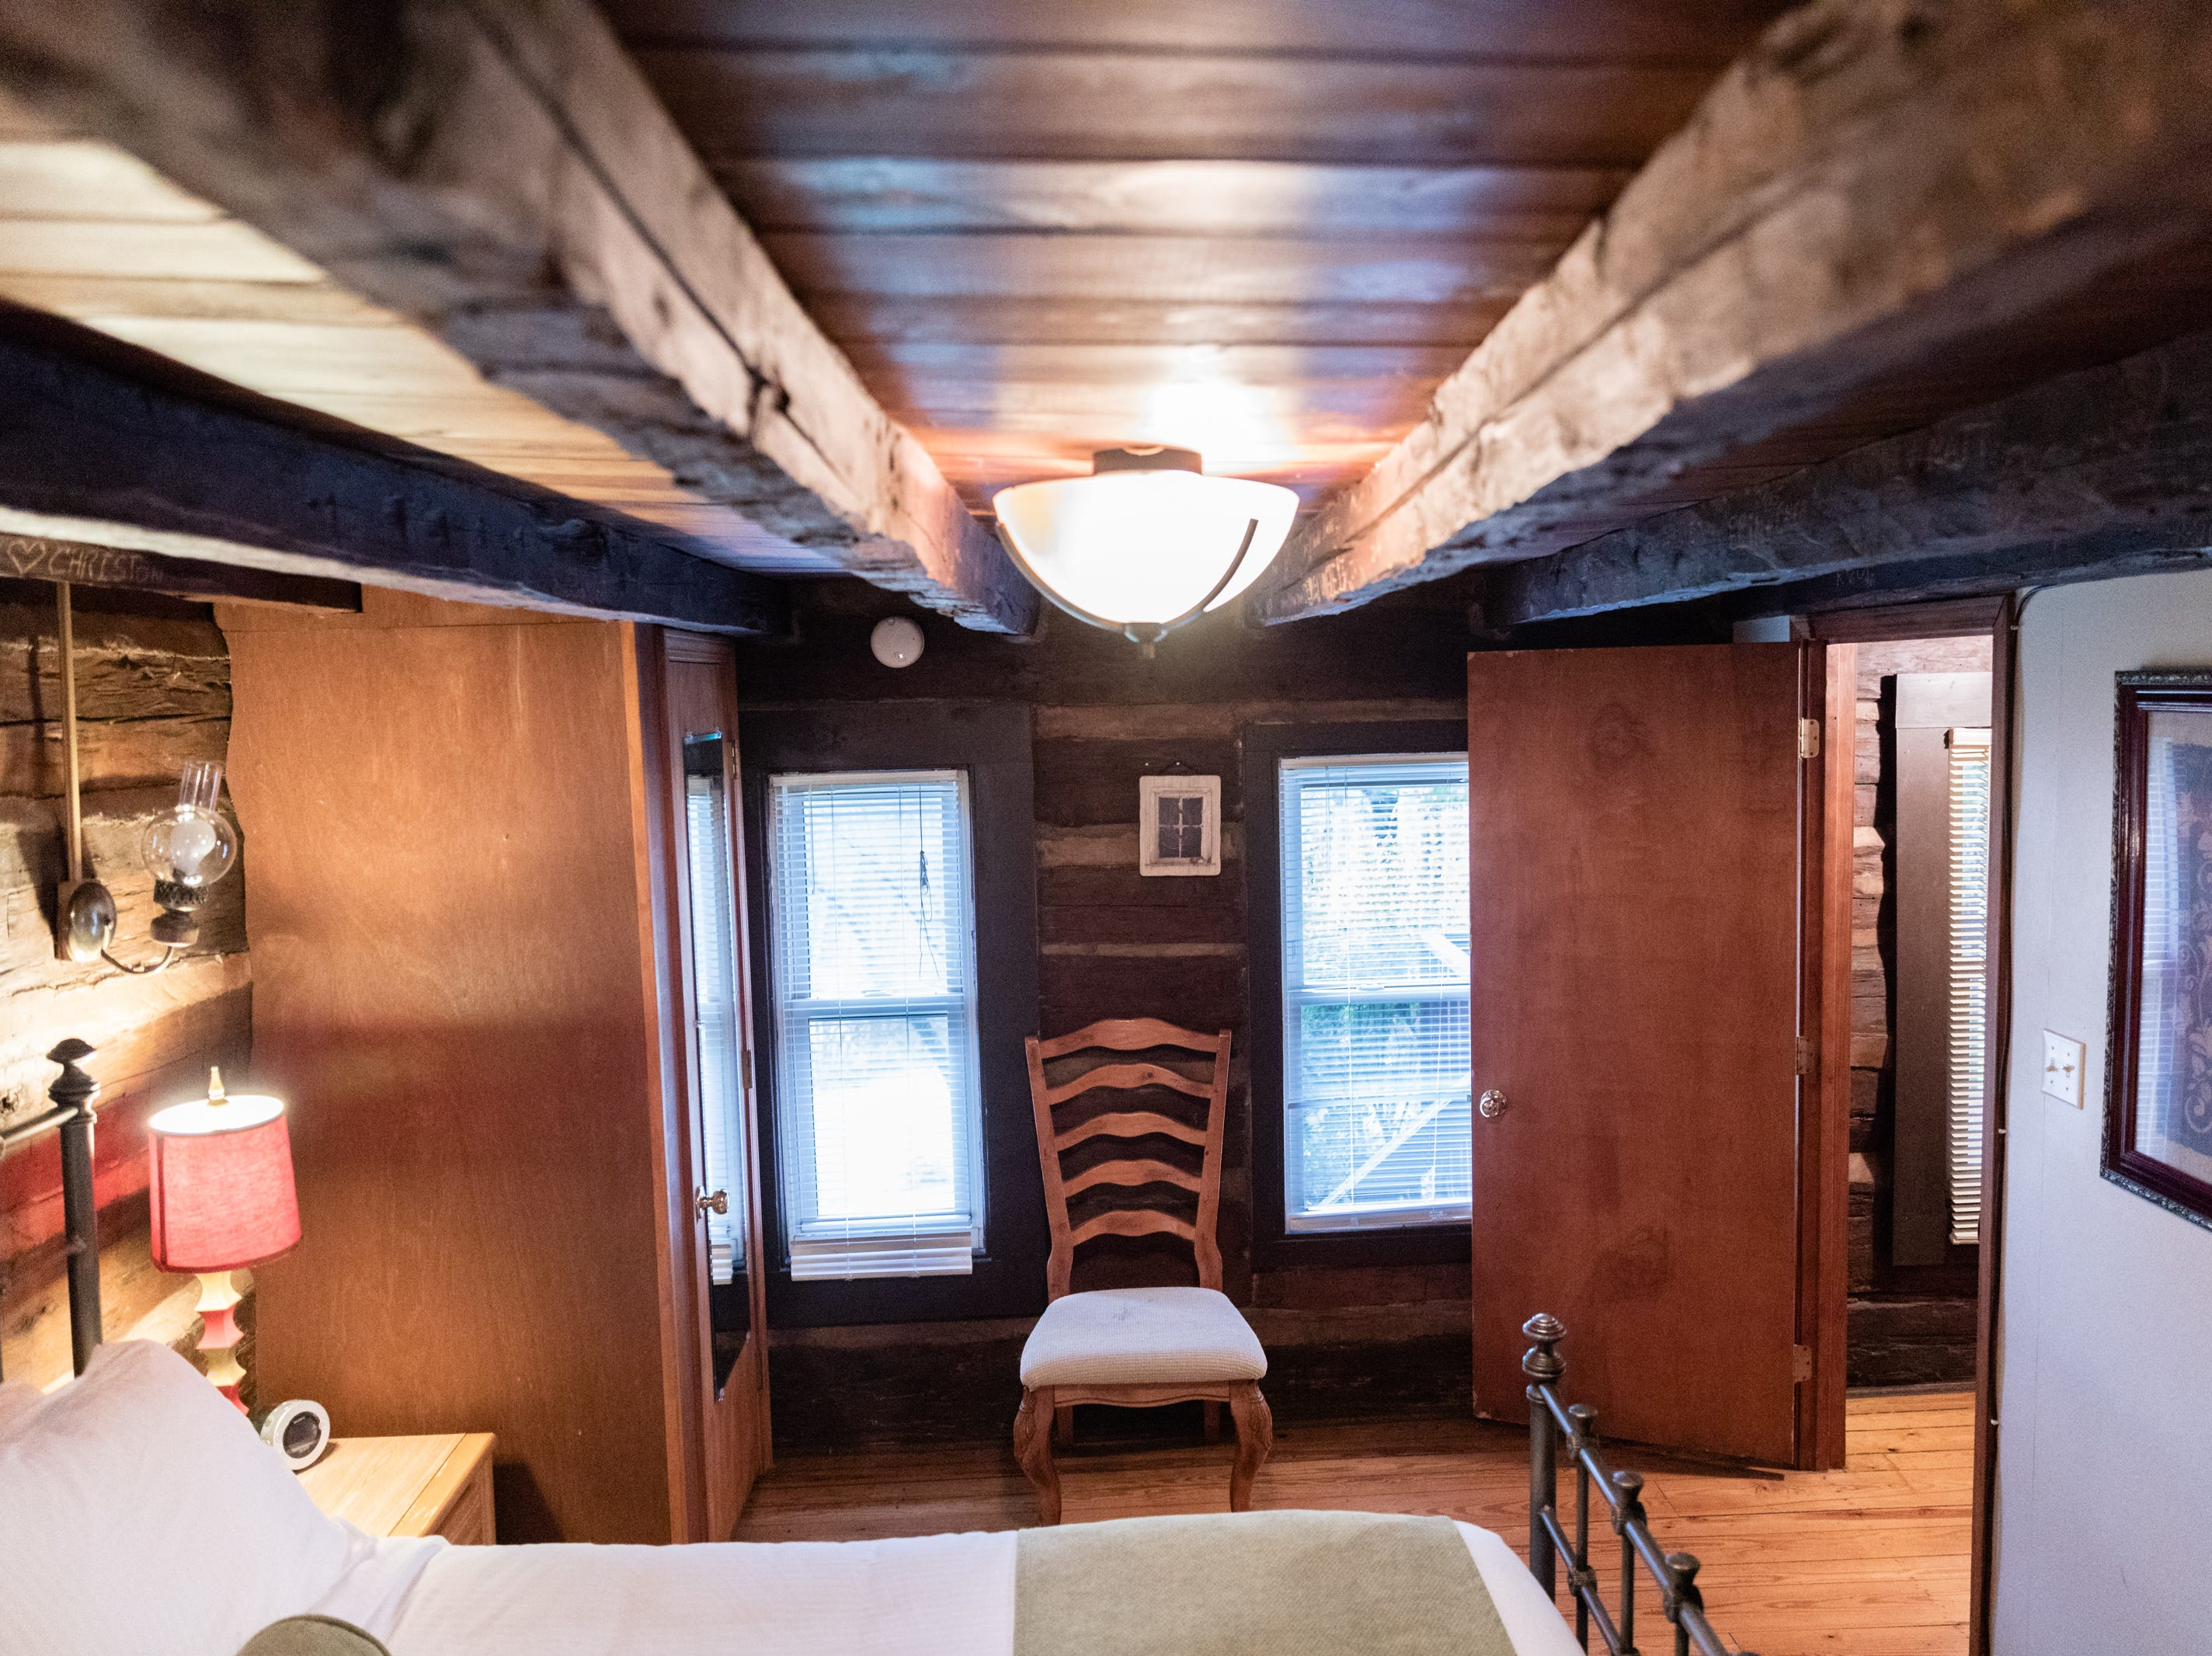 The McLeod family's Asheville Cabins of Willow Winds vacation rentals sits nestled in the woods off of Sweeten Creek Road in South Asheville, and includes two 1800's log cabins on their original site with their original working fireplaces.